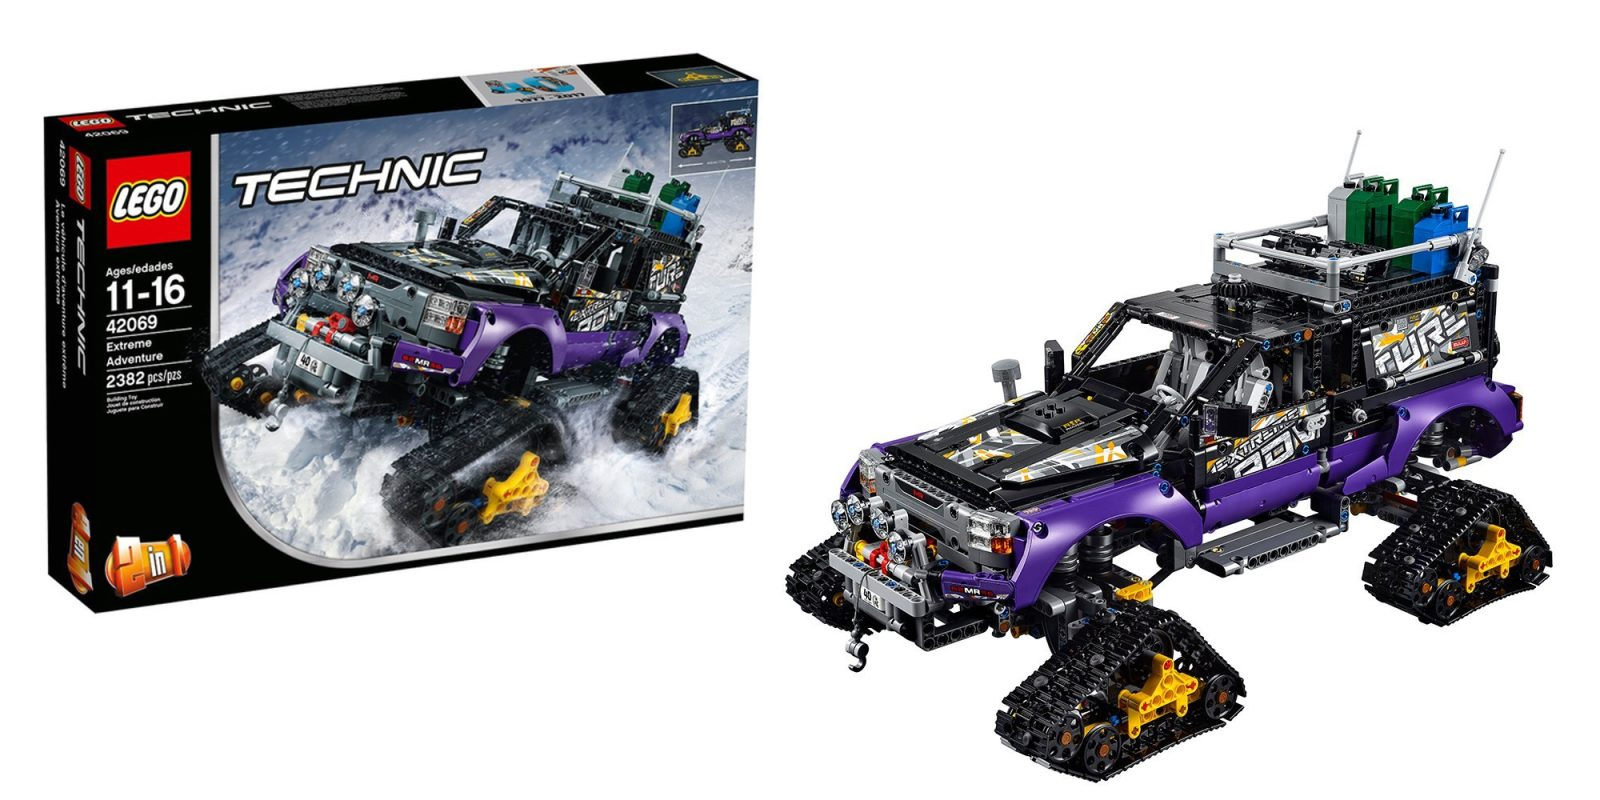 Lego Technic Extreme Adventure Kit Gets First Discount To